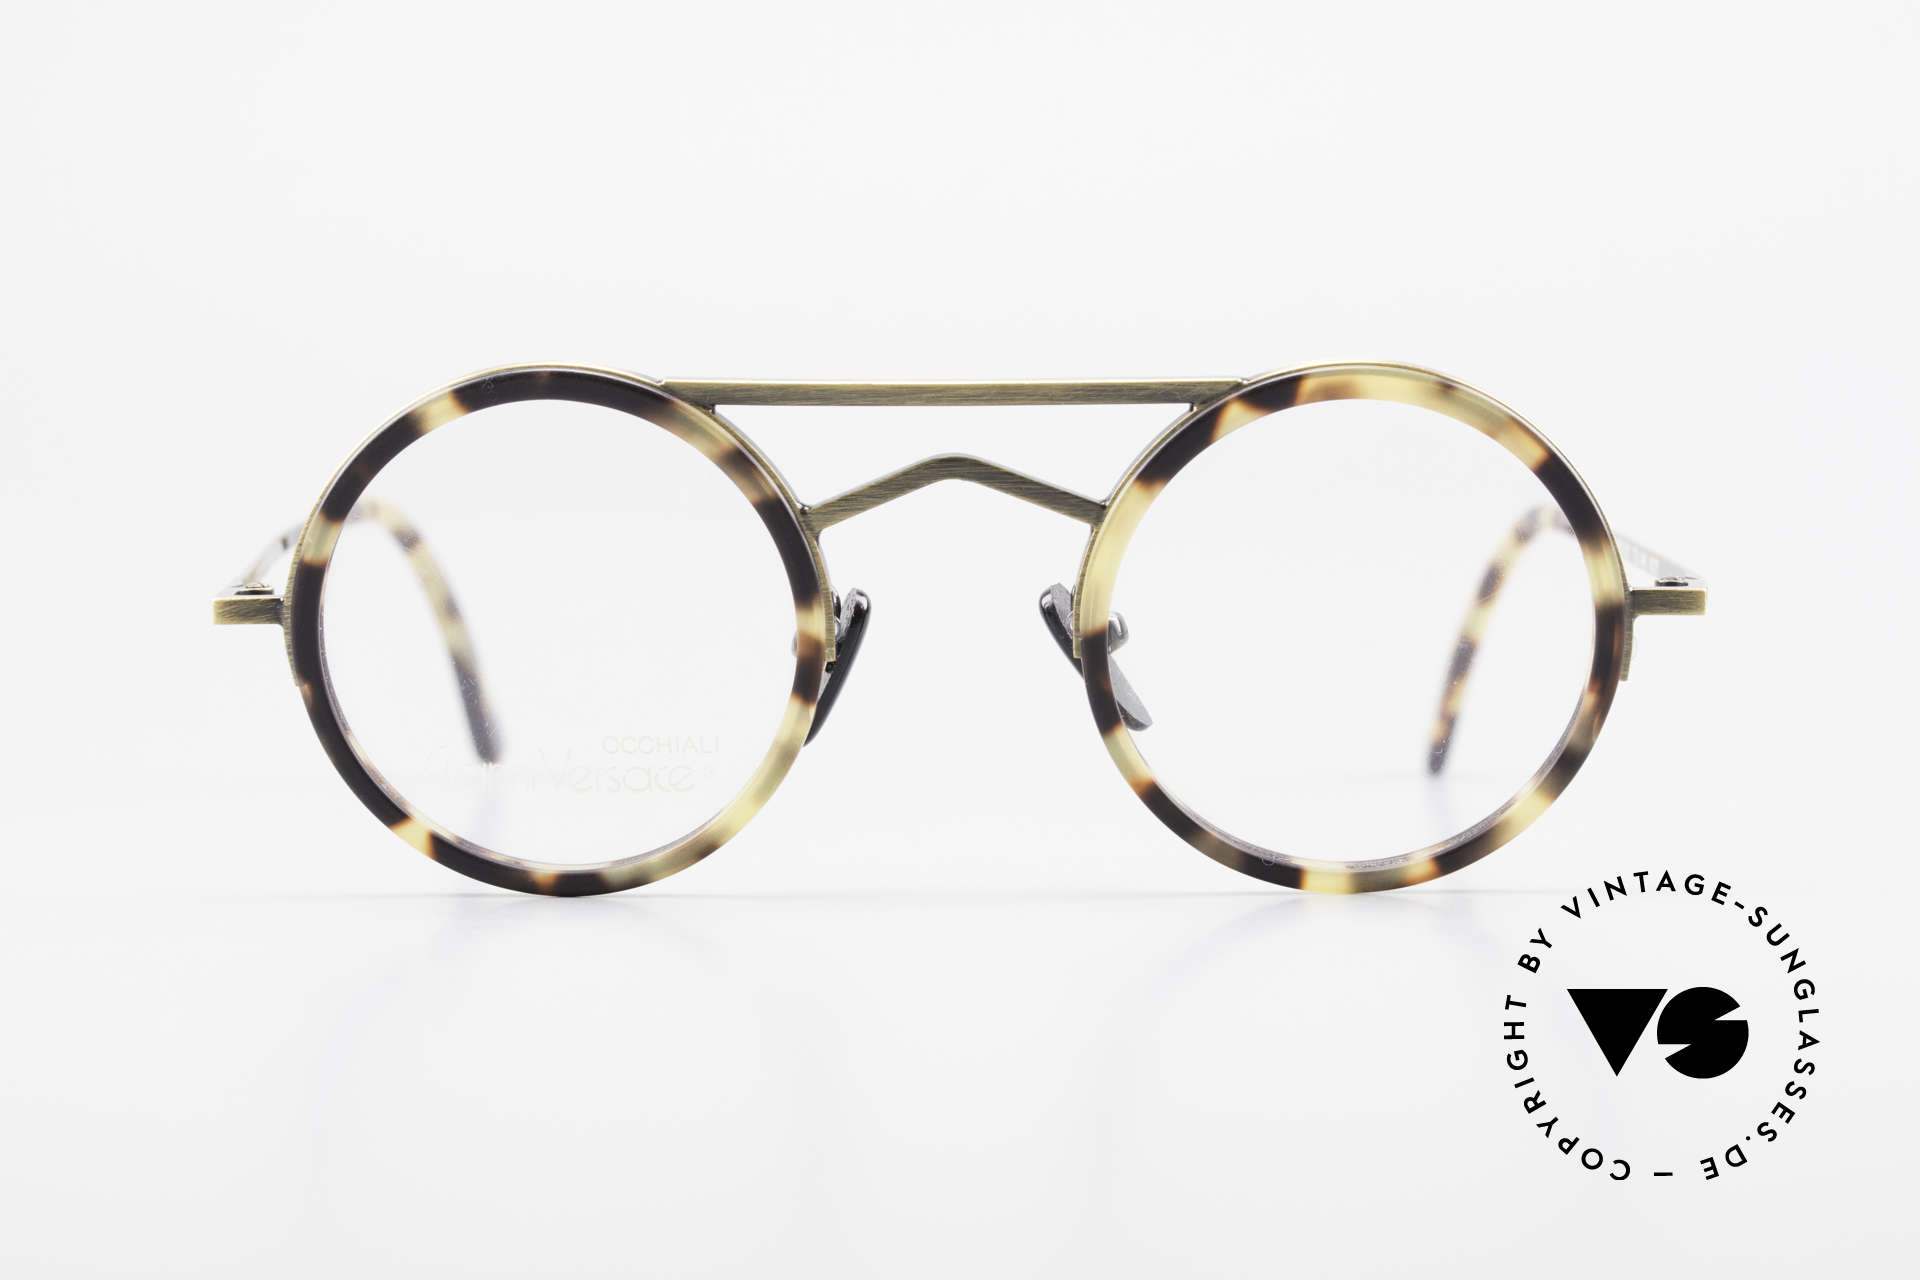 Gianni Versace 620 Round 90's Vintage Eyeglasses, geometrical elements and striking double bridge, Made for Men and Women